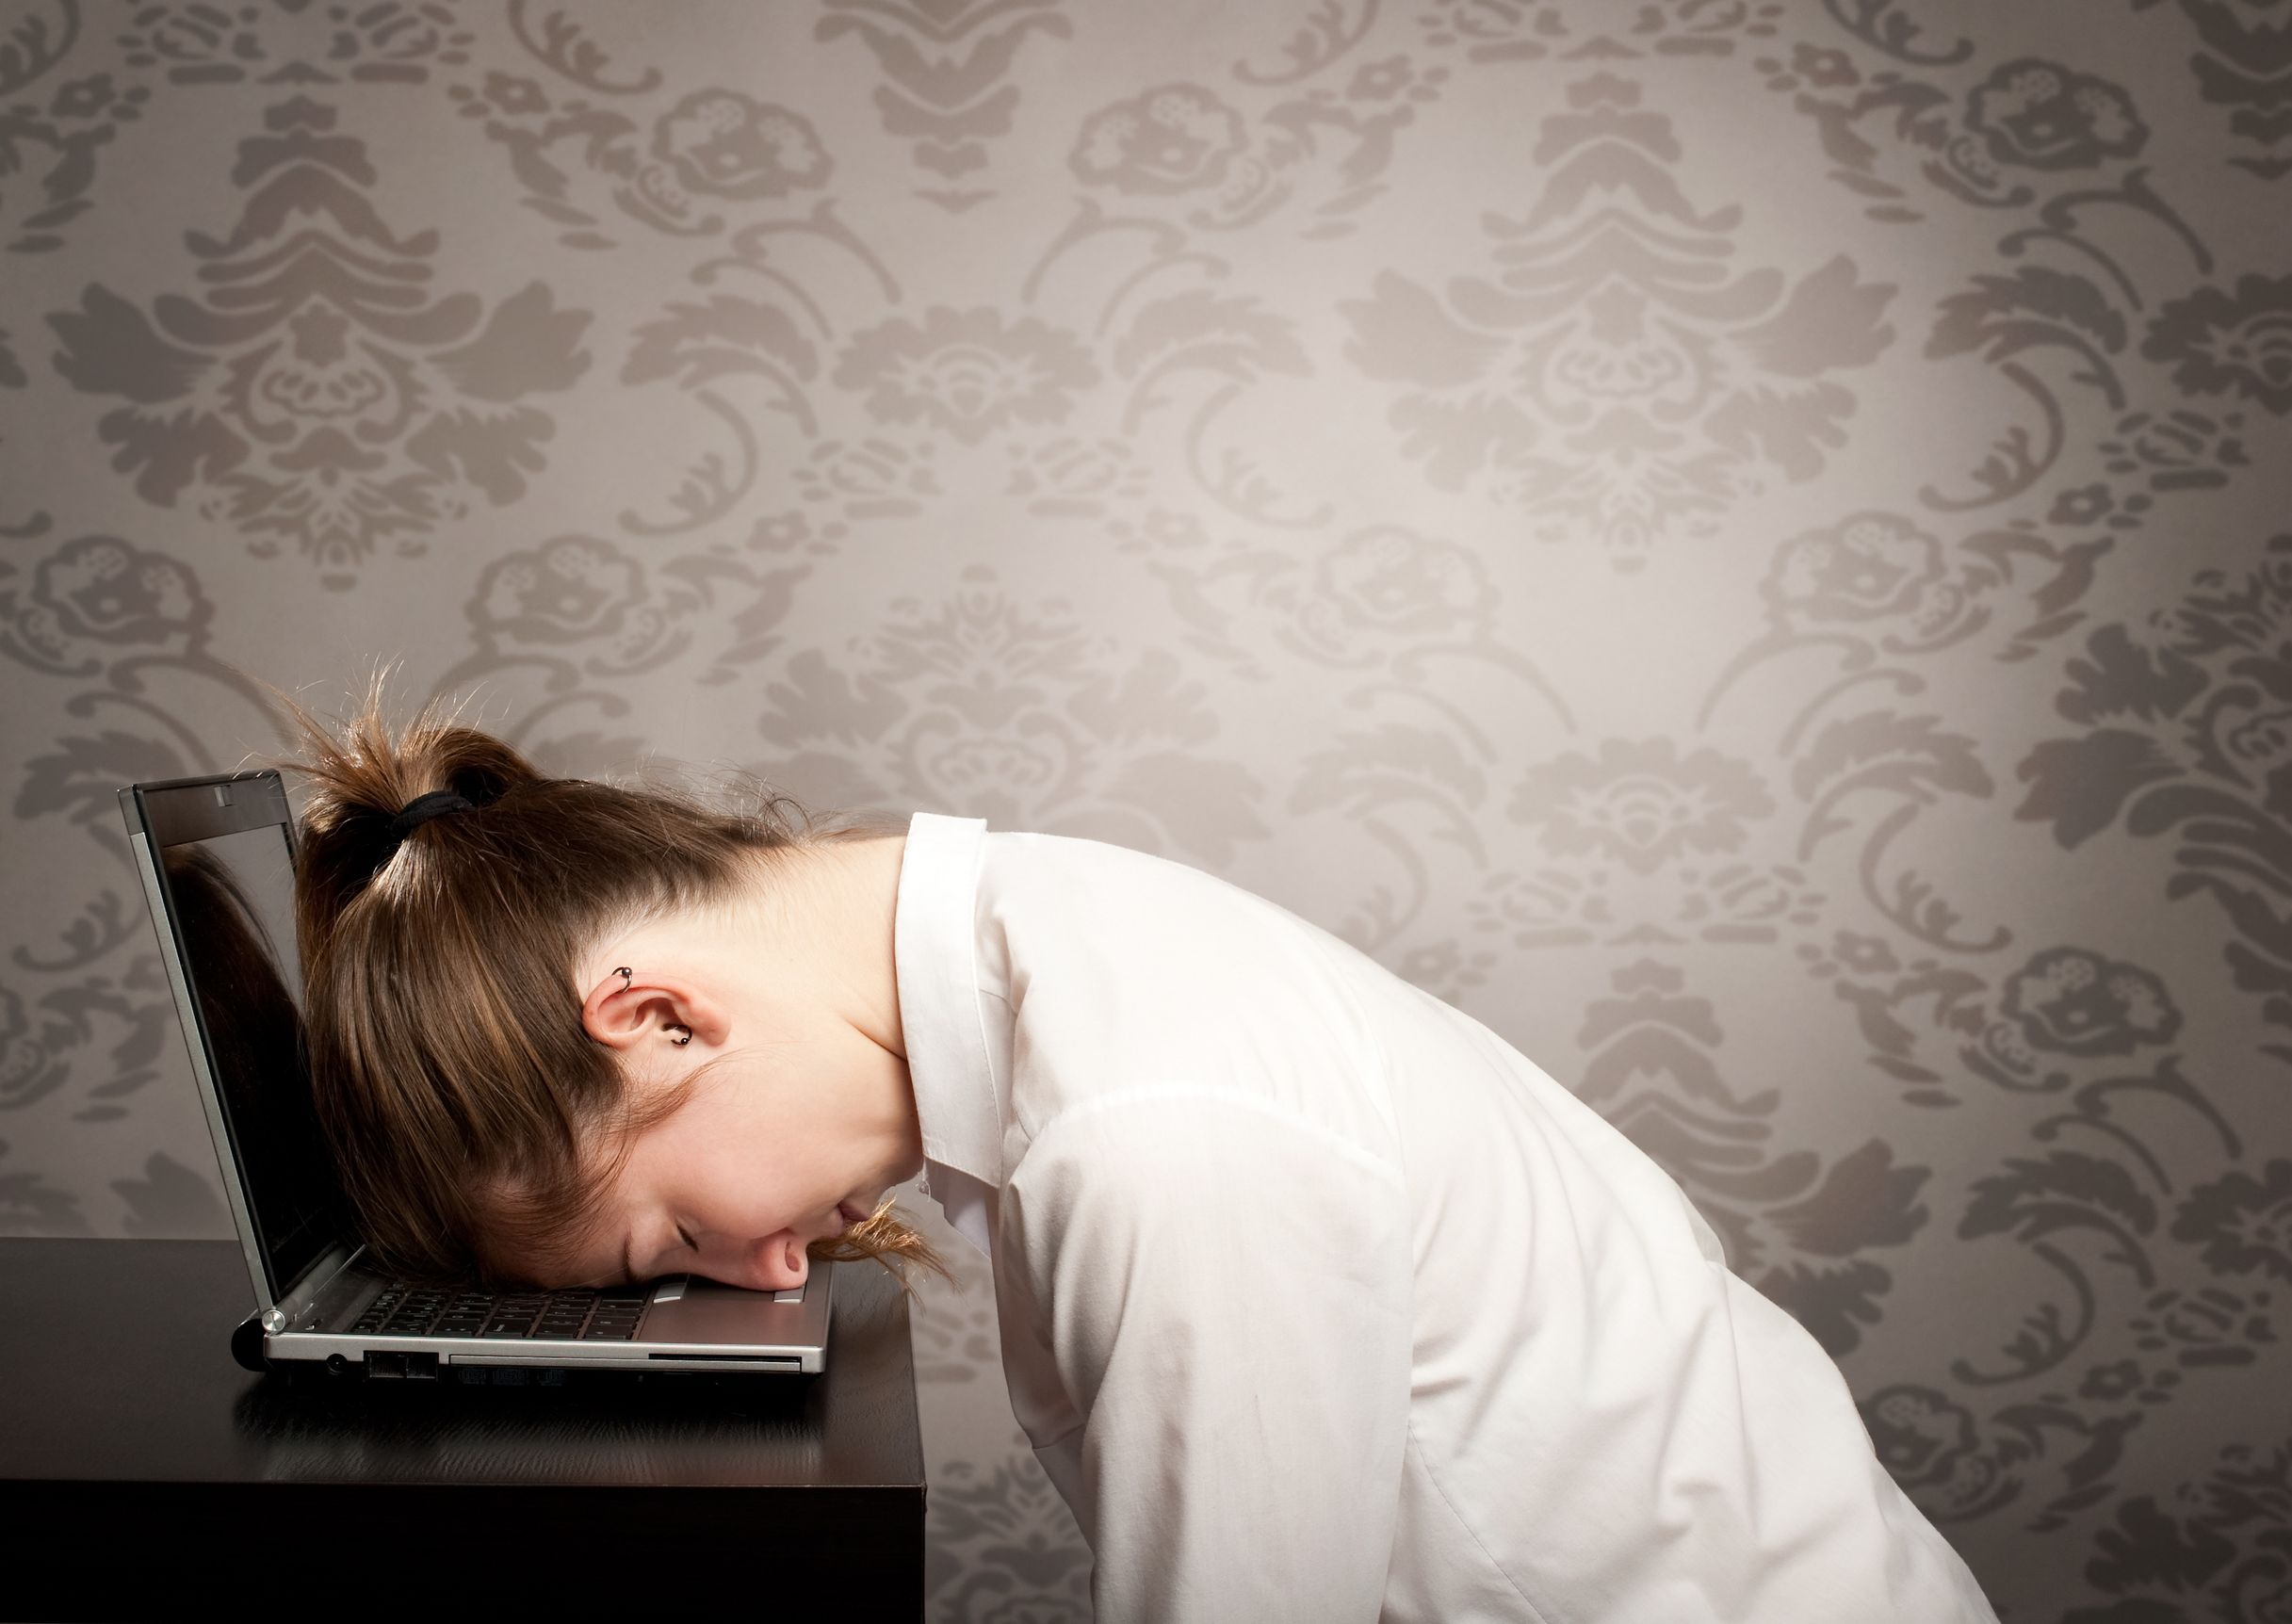 Tips to Prevent Fatigue at Work